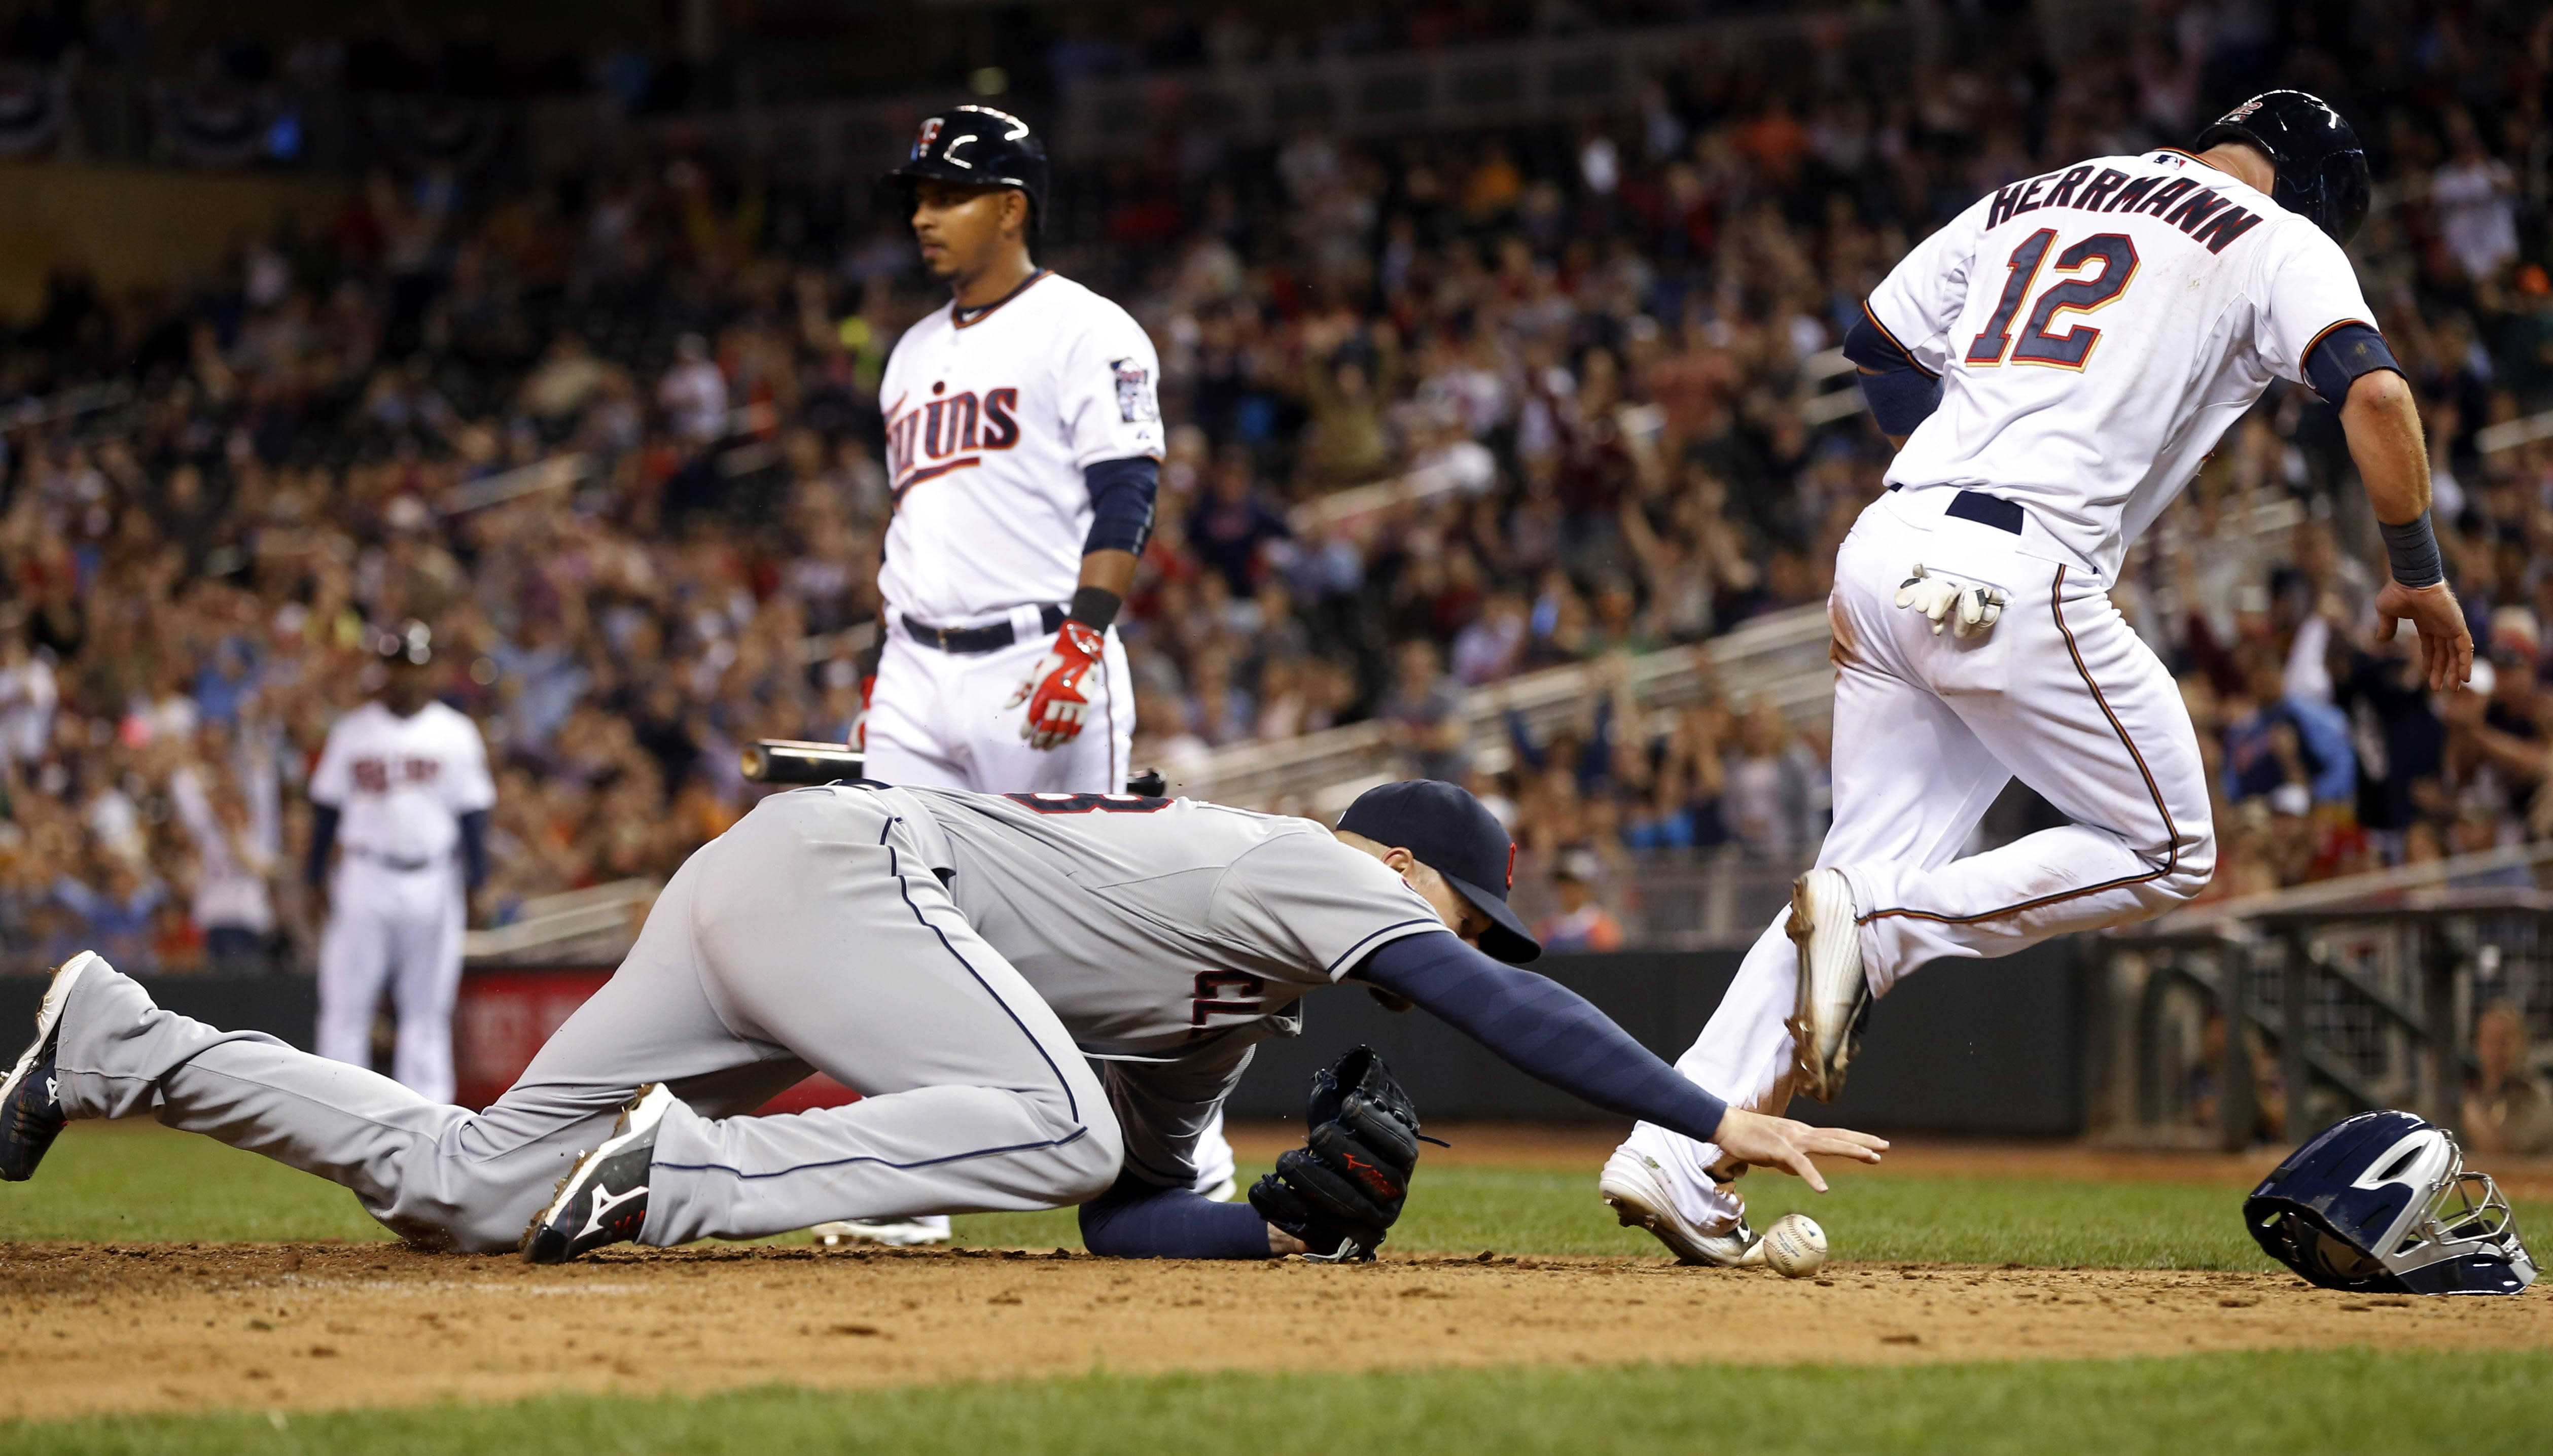 Plouffe's homer in 11th lifts Twins over Indians 3-2